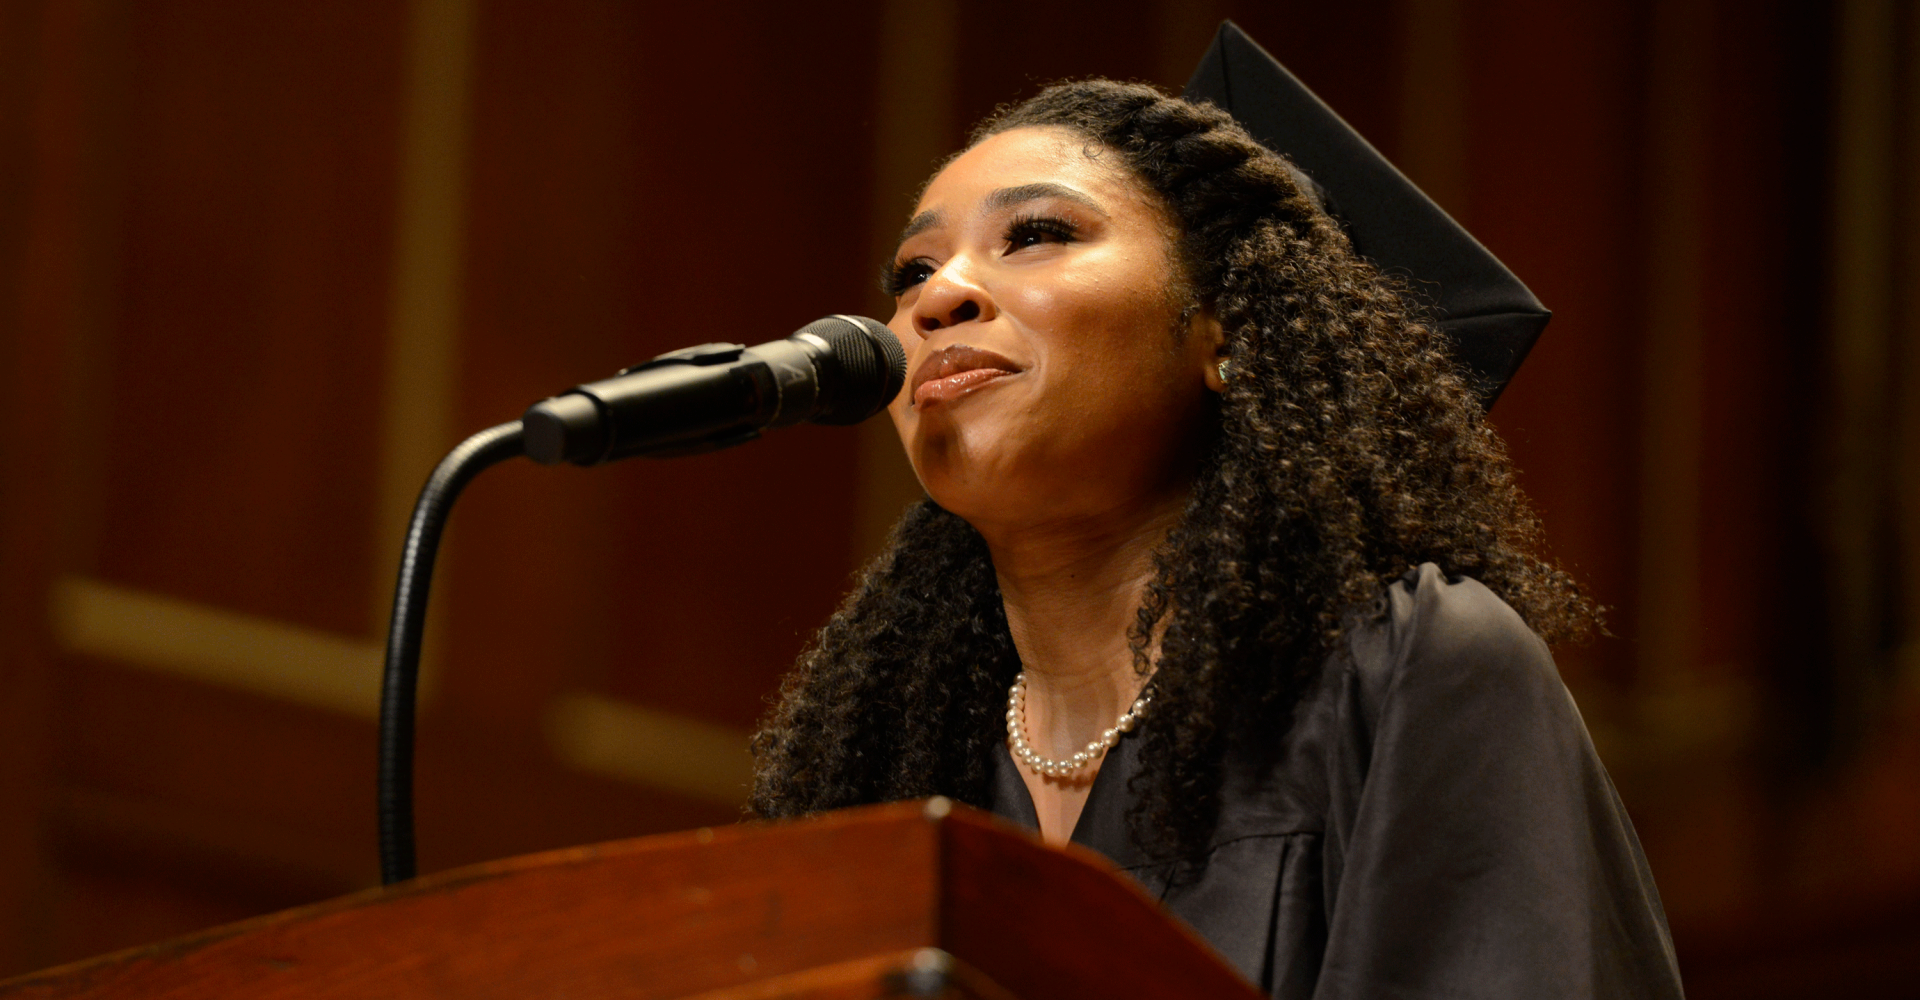 Darynn Dean stands at a podium wearing a graduation cap and gown. She smiles and looks into the distance while speaking into a microphone.